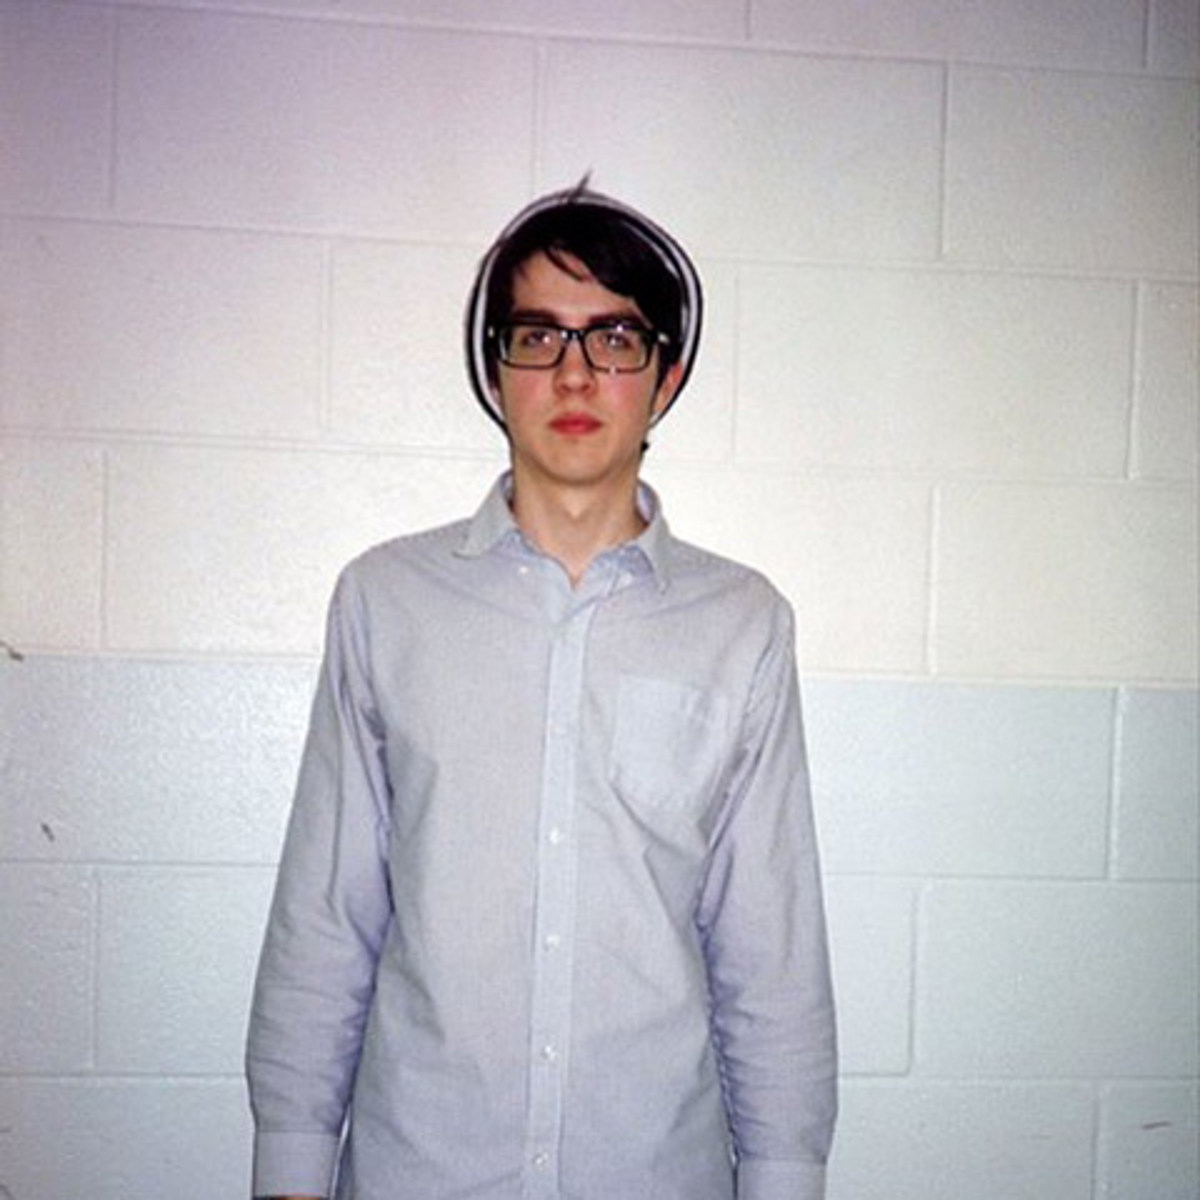 Seattle S Car Seat Headrest Released How To Leave Town Touring